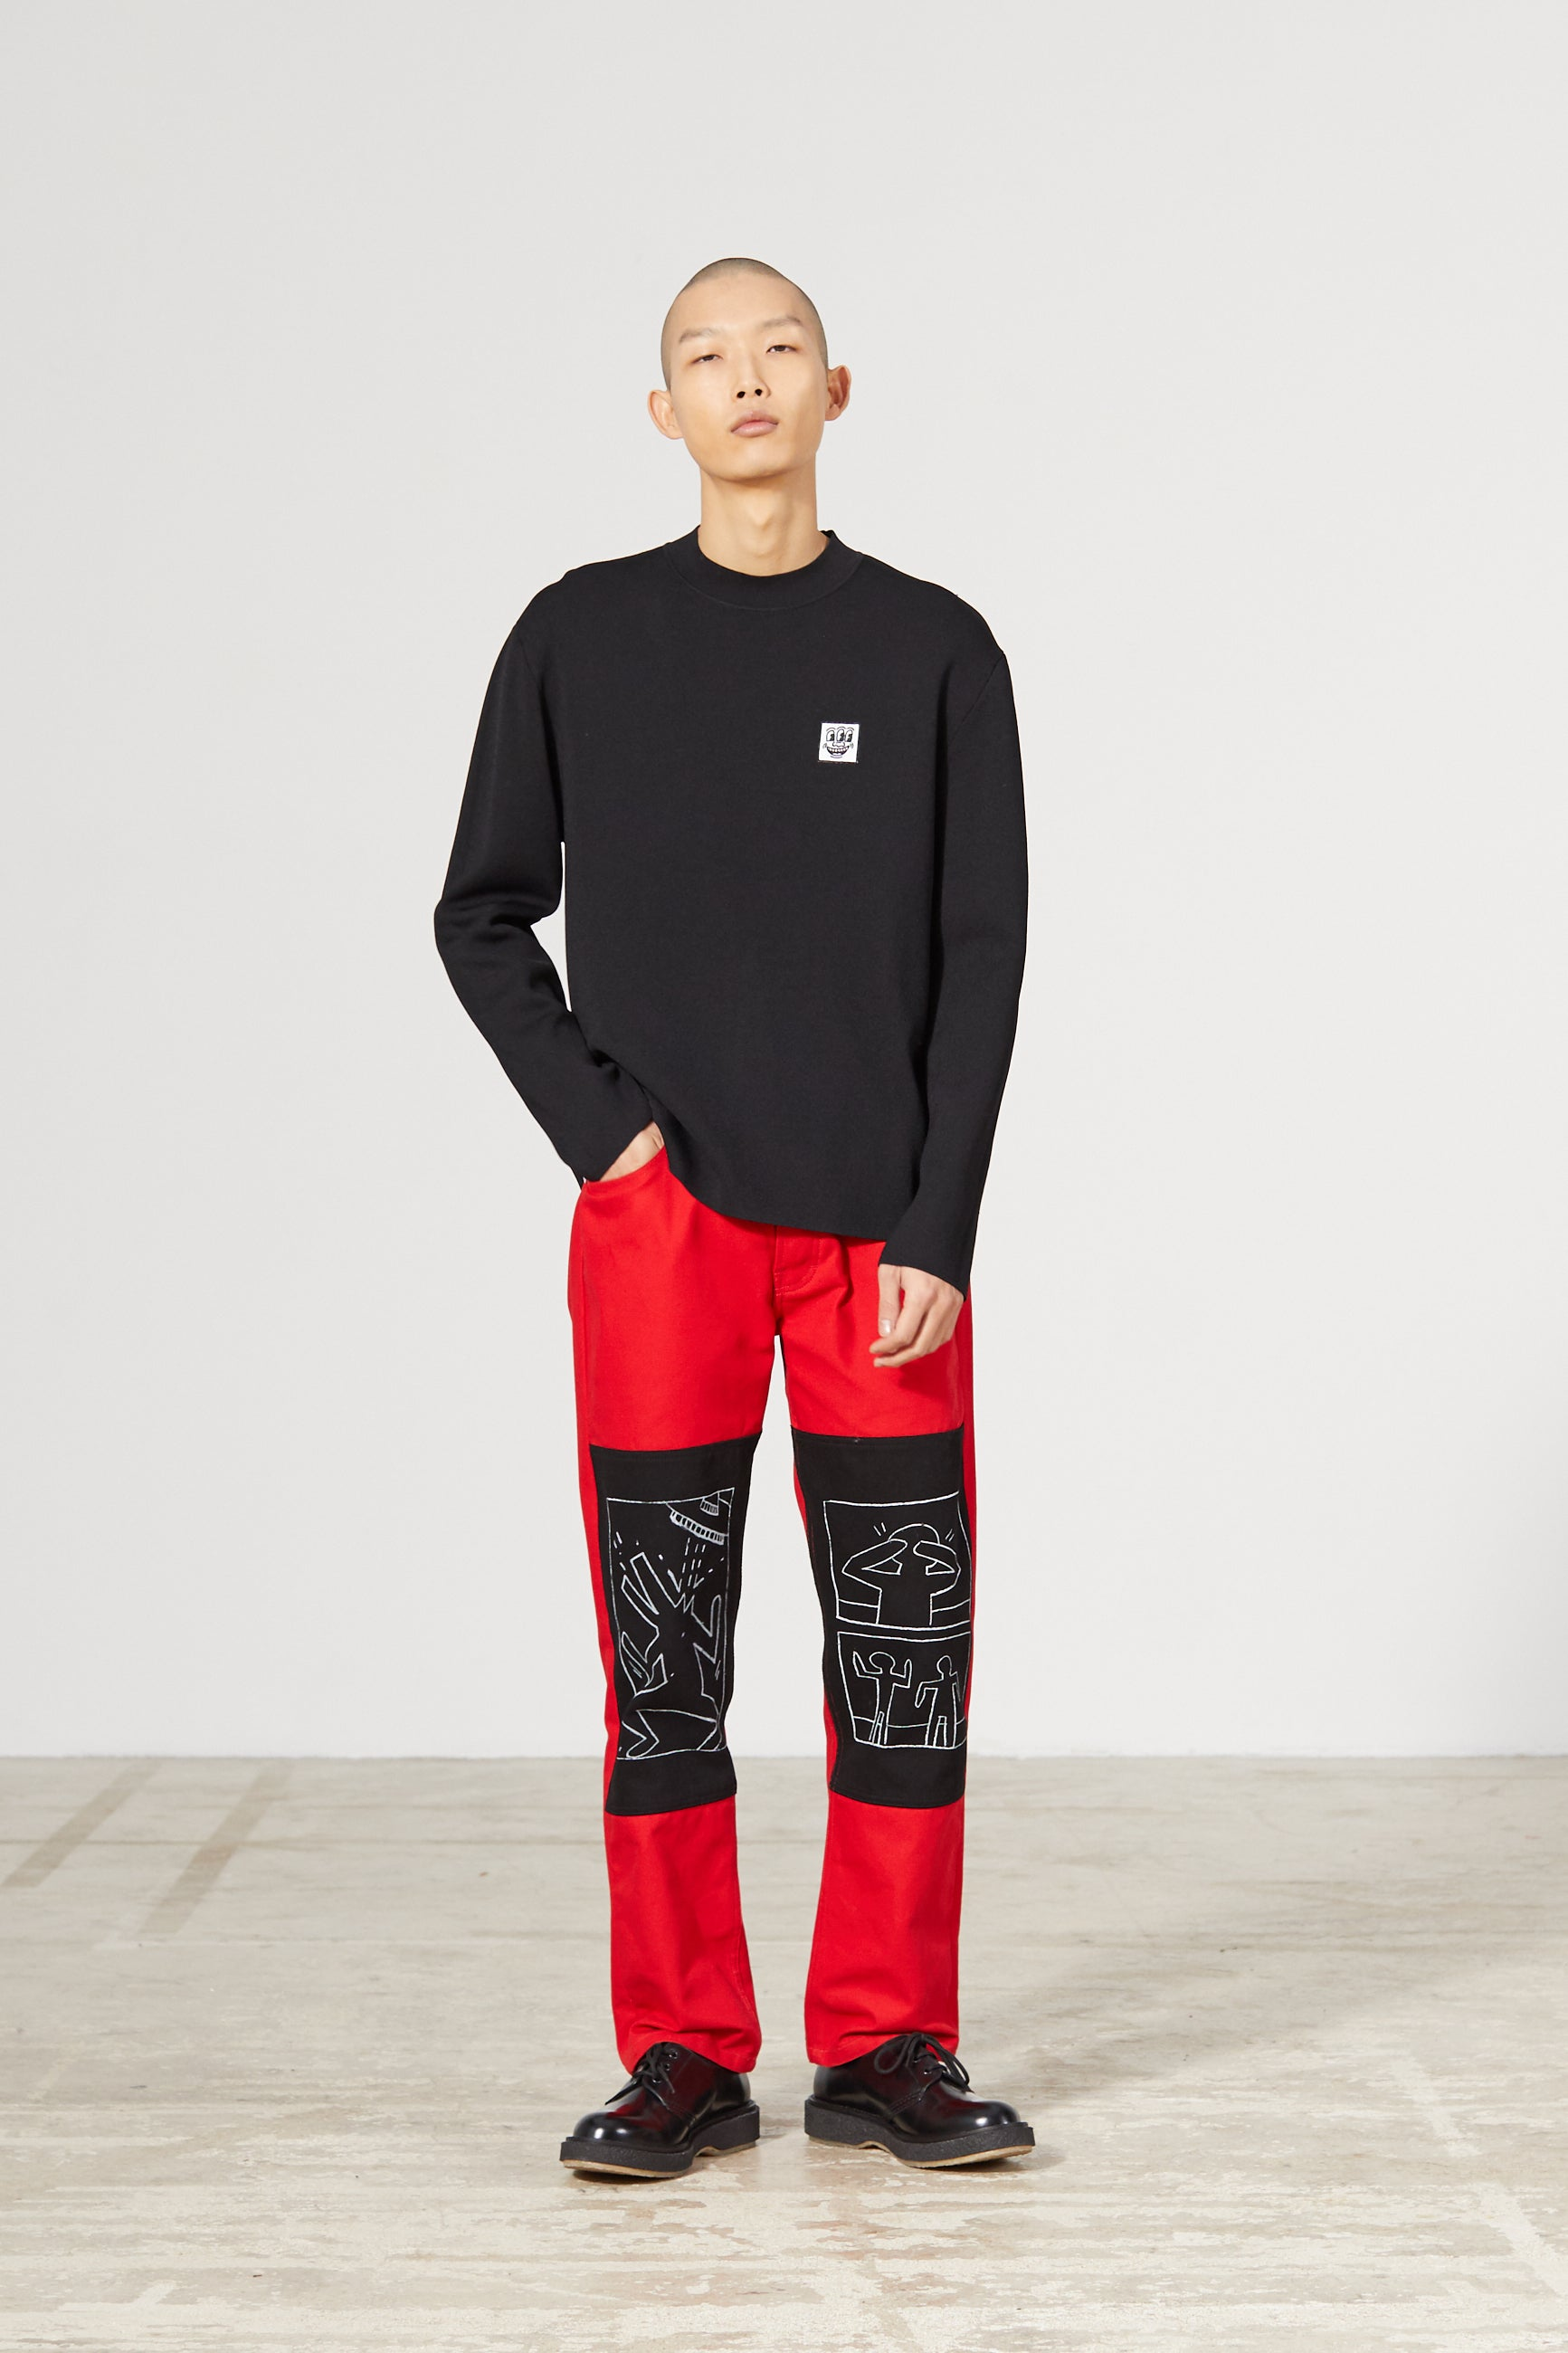 NEIL PATCH KEITH HARING BLACK SWEATER